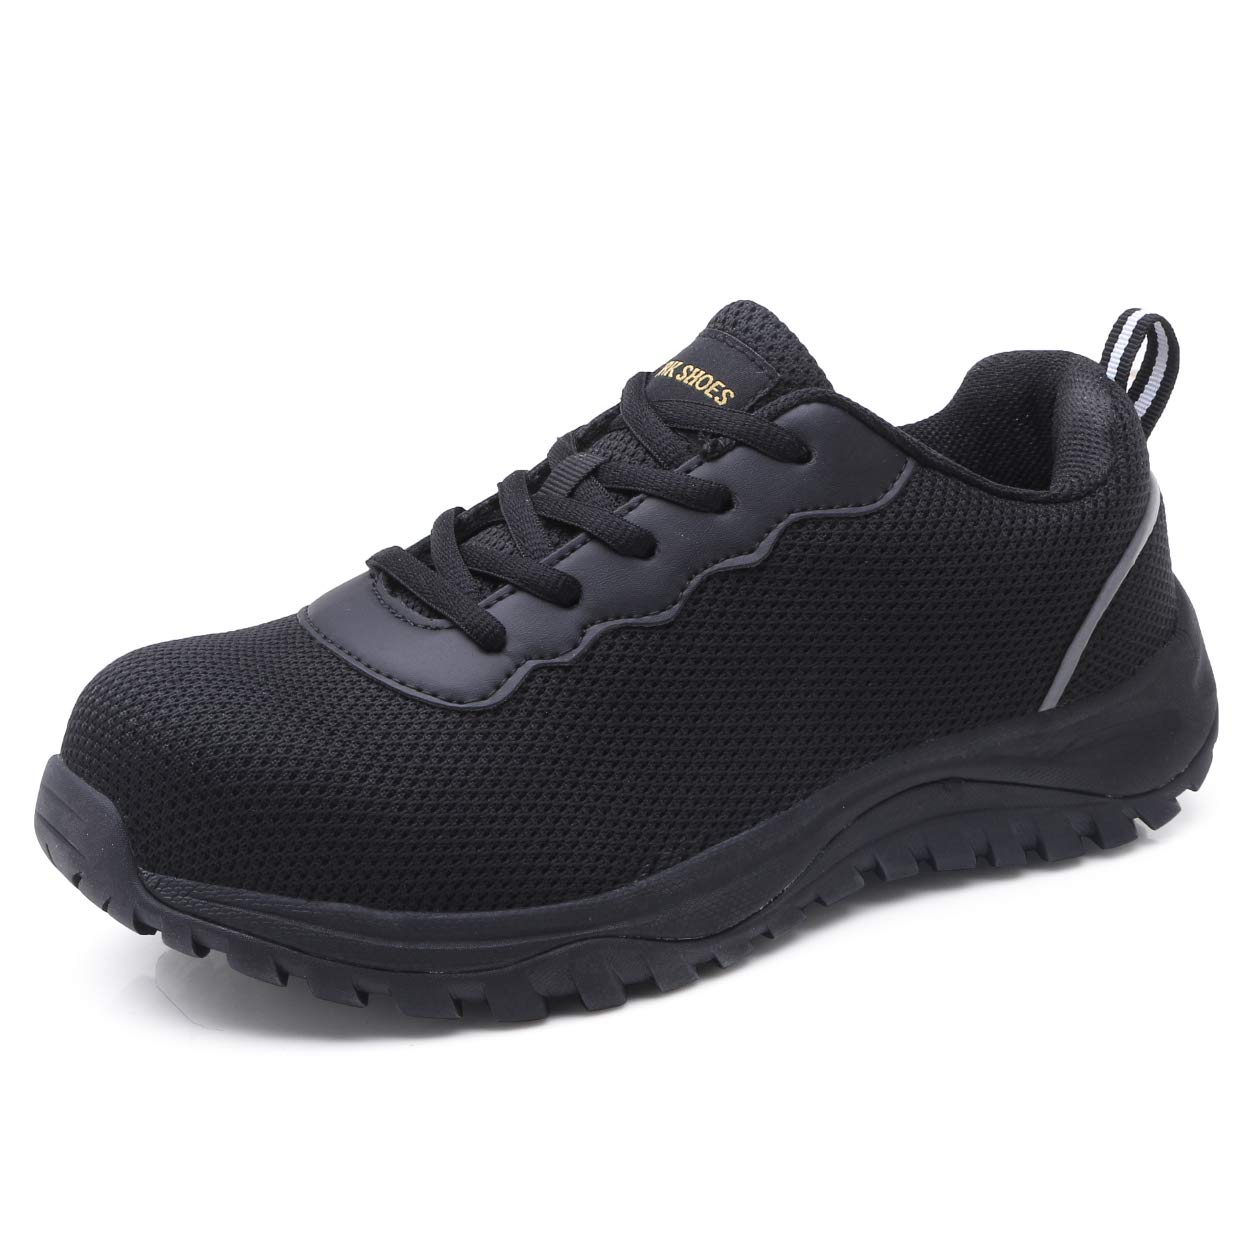 aeepd Steel Toe Shoes Men, Safety Work Sneakers Reflective Strip Industrial & Construction Shoe